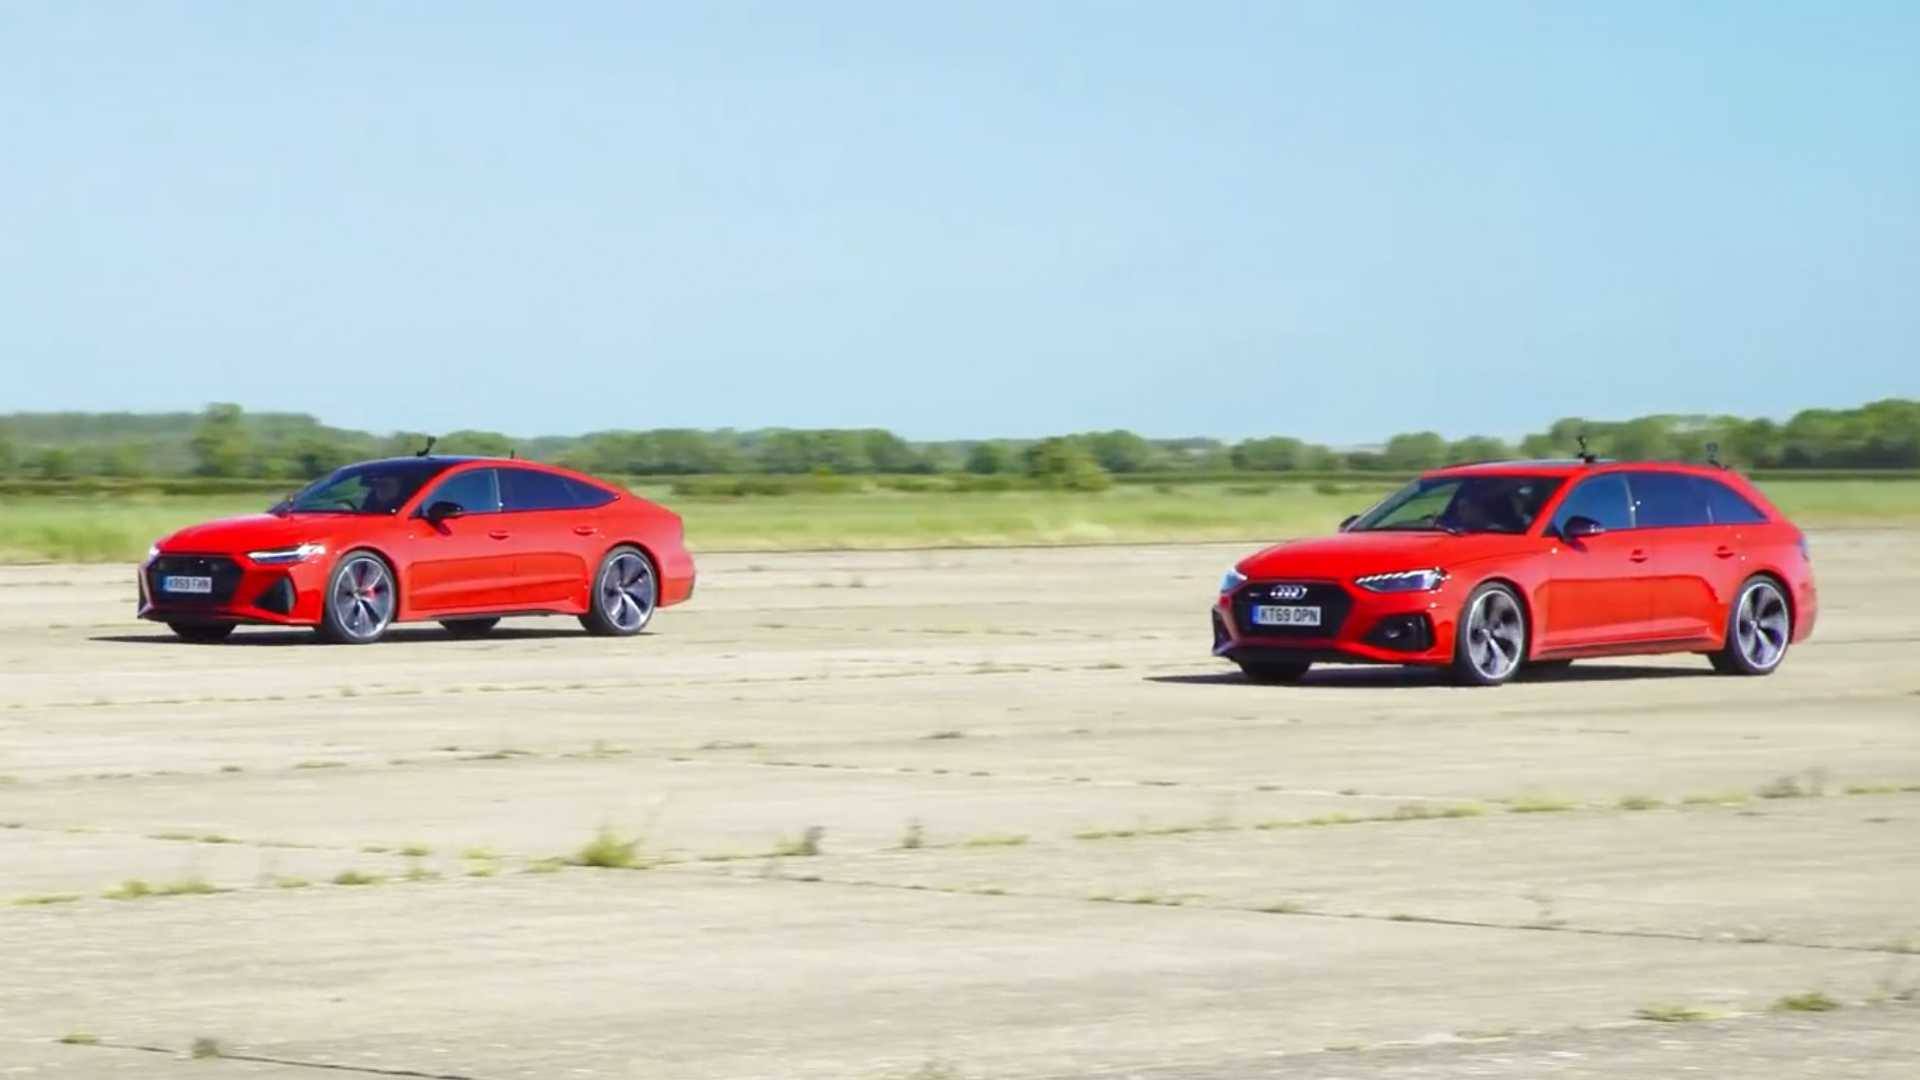 Audi RS4 Avant Drag Races RS7 Sportback In Sibling Rivalry - Motor1